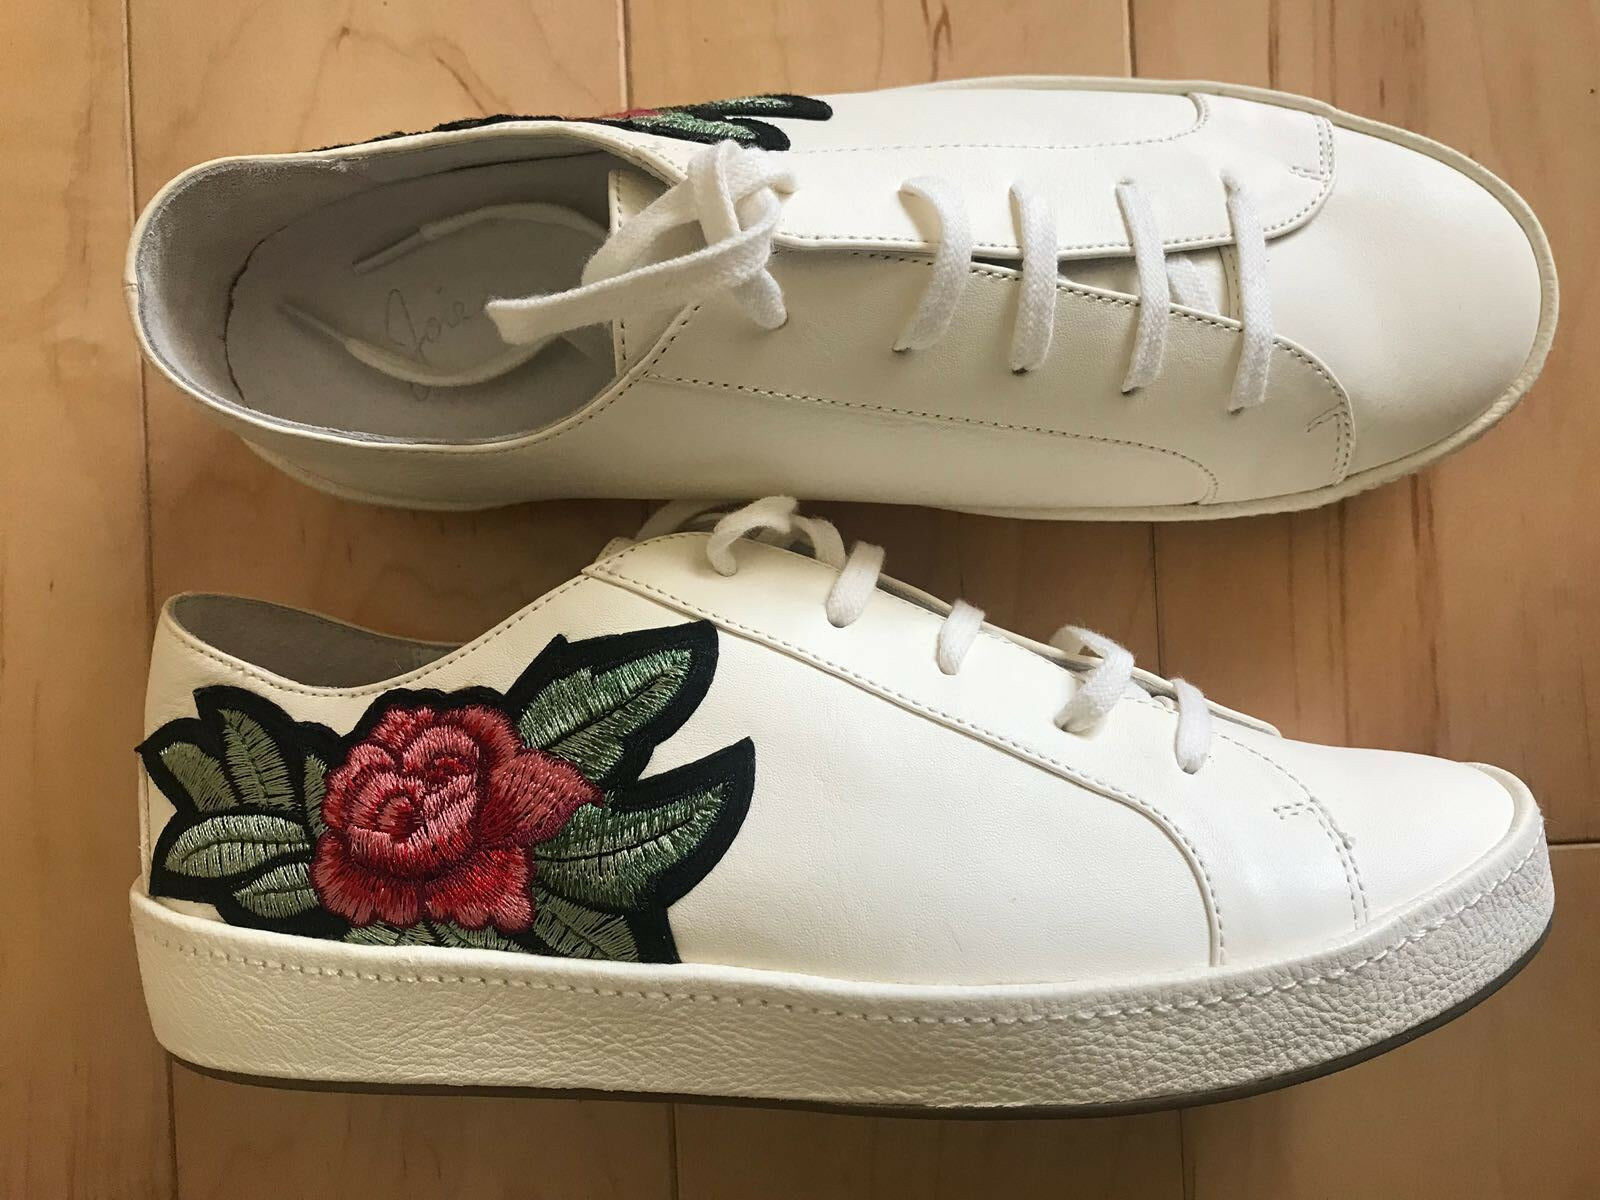 Joie Daryl Embroidered Sneakers, Shell, Size 37